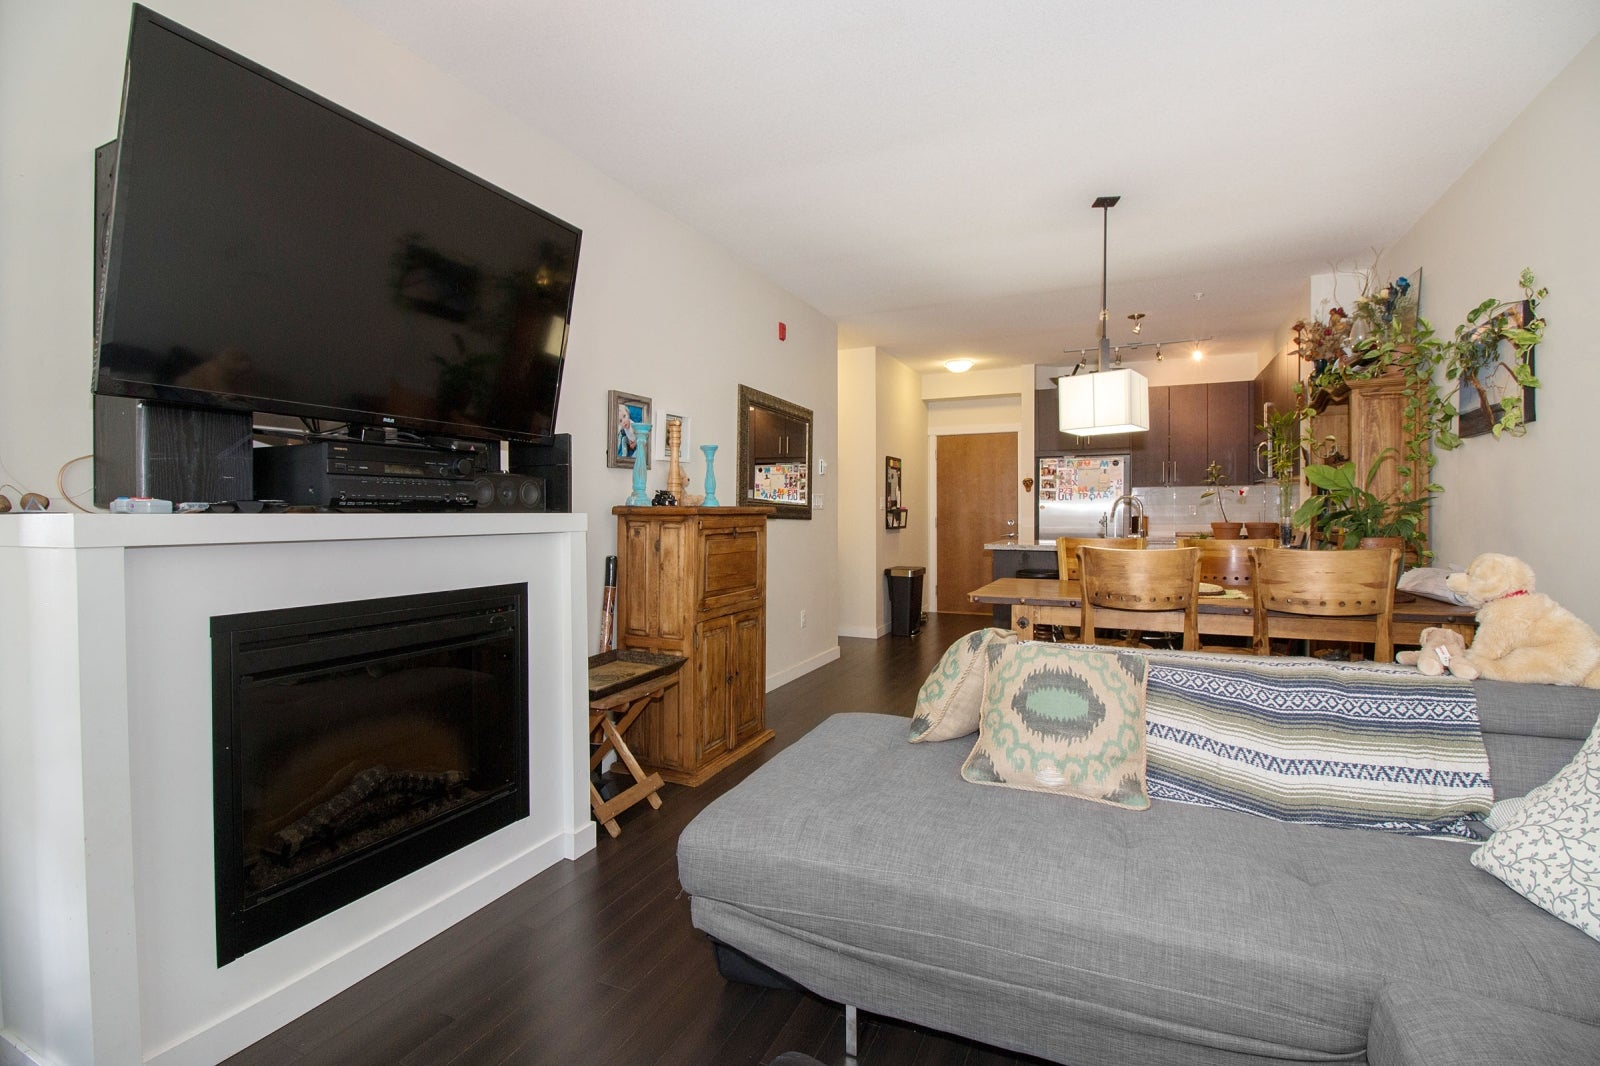 306 139 W 22ND STREET - Central Lonsdale Apartment/Condo for sale, 2 Bedrooms (R2201915) #7